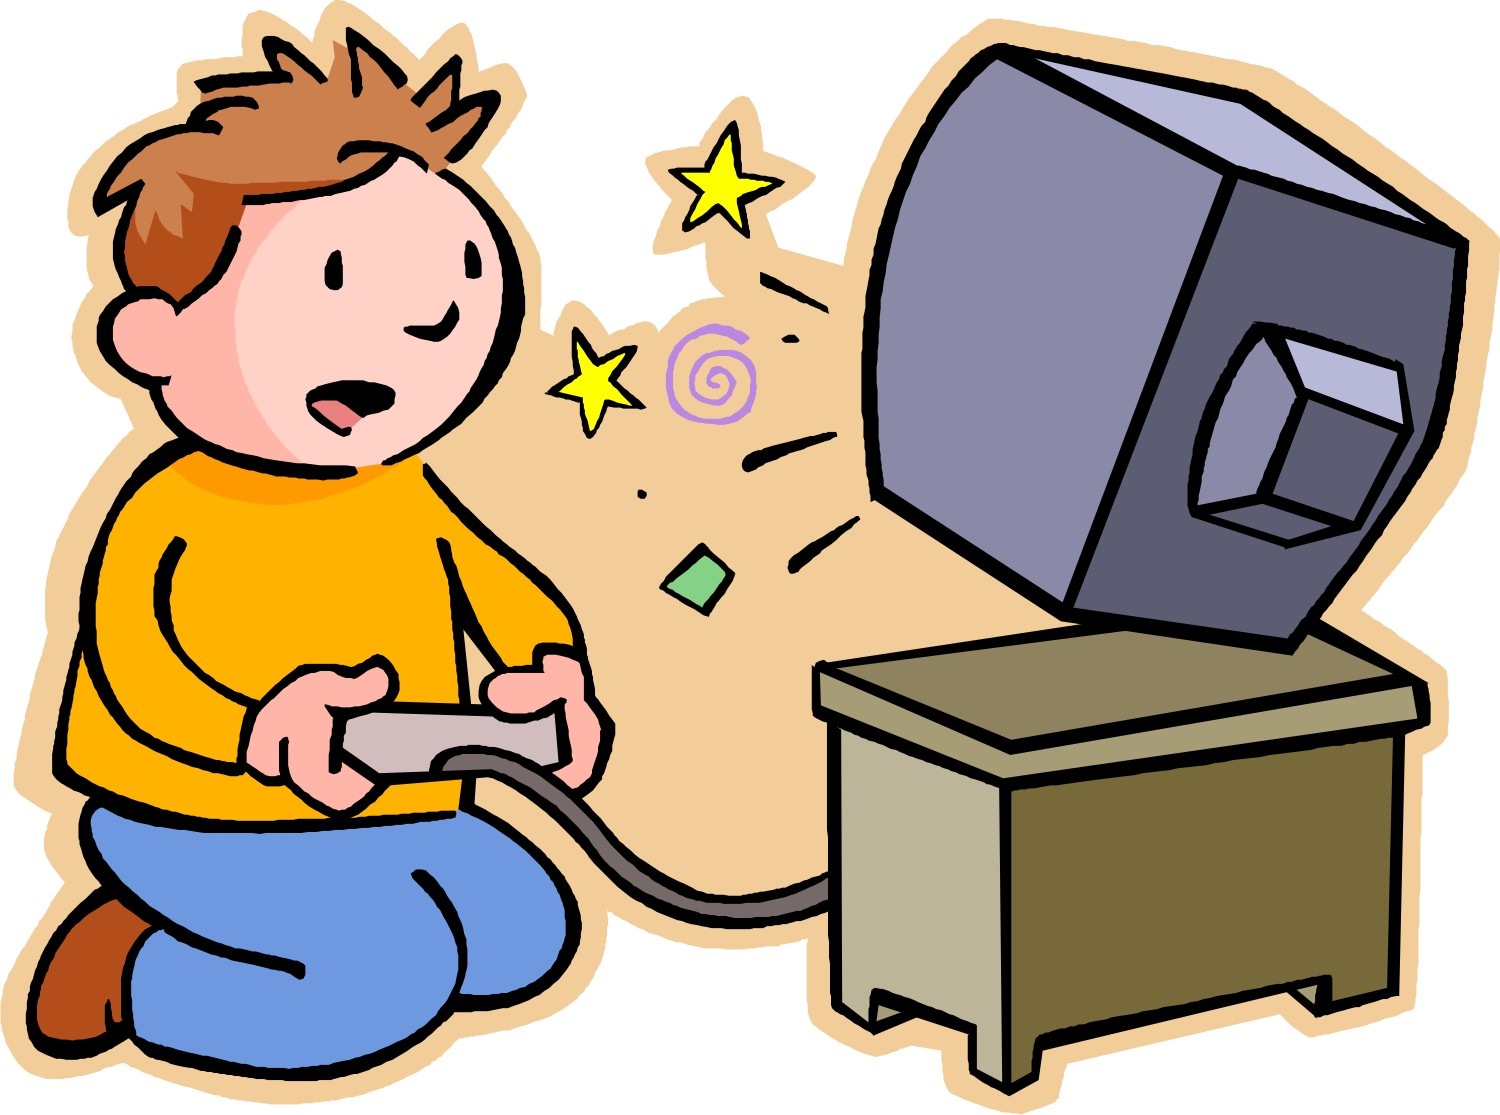 About Online Video Games